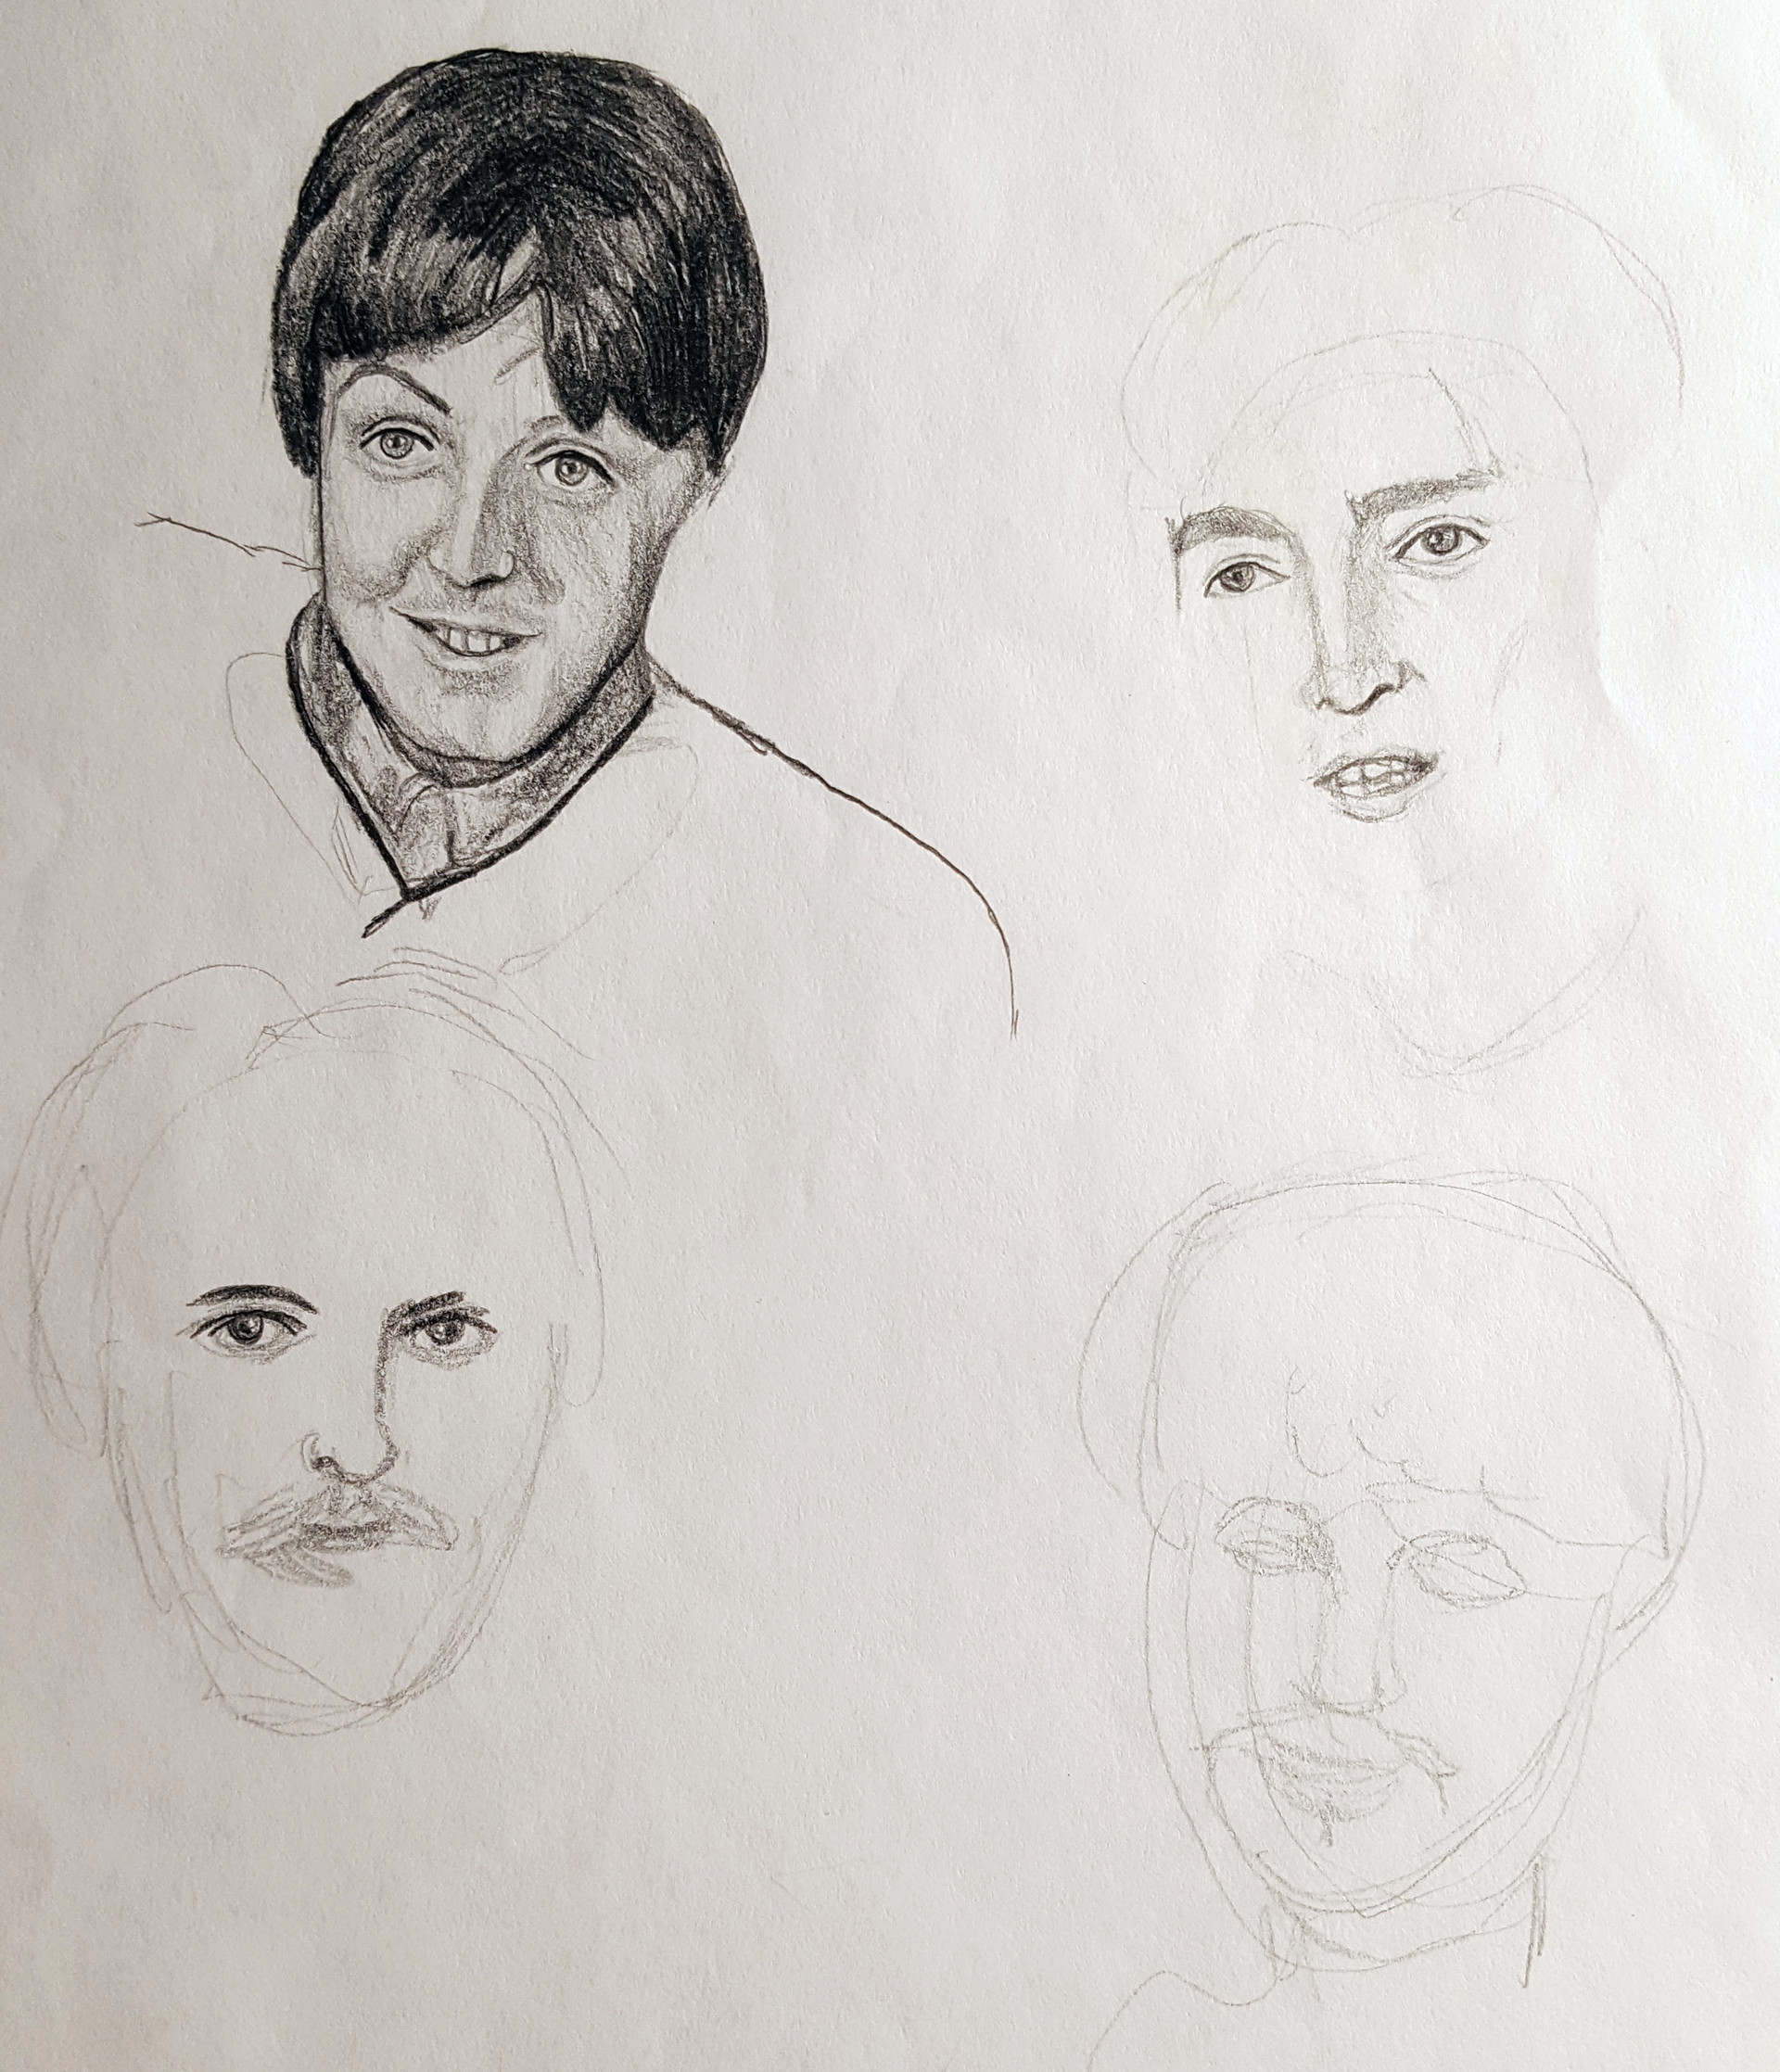 Benni amato beatles unfinished